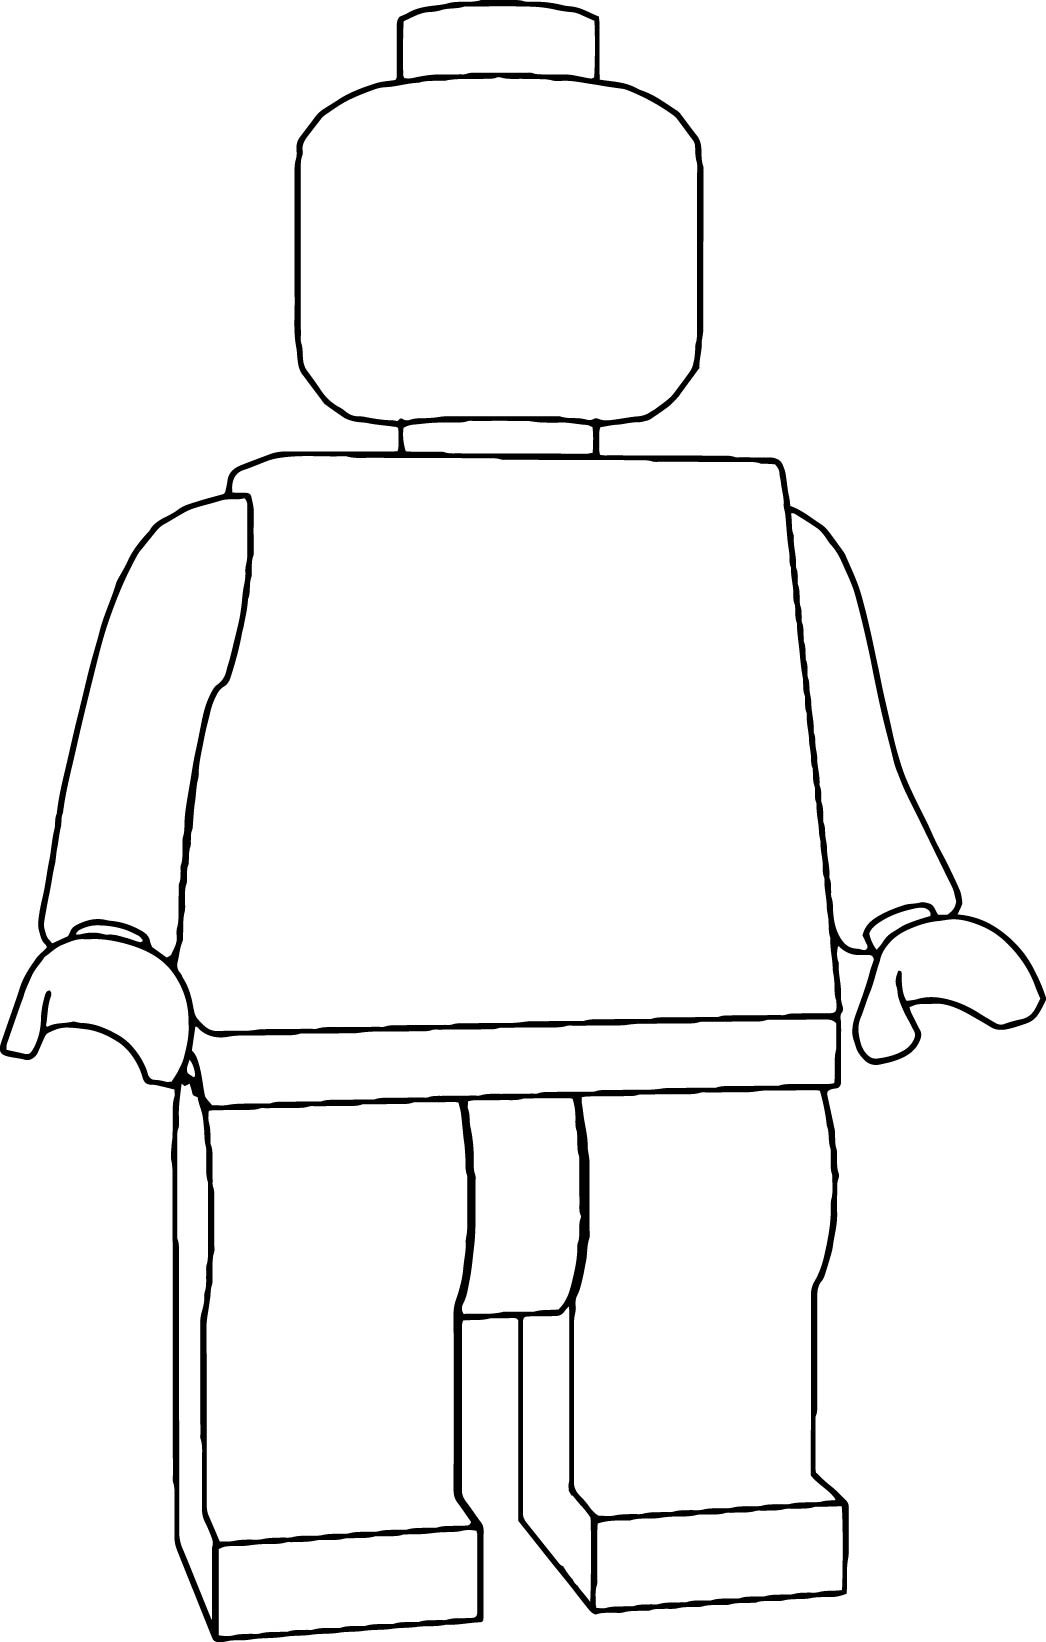 Empty Lego Body Coloring Page | Wecoloringpage